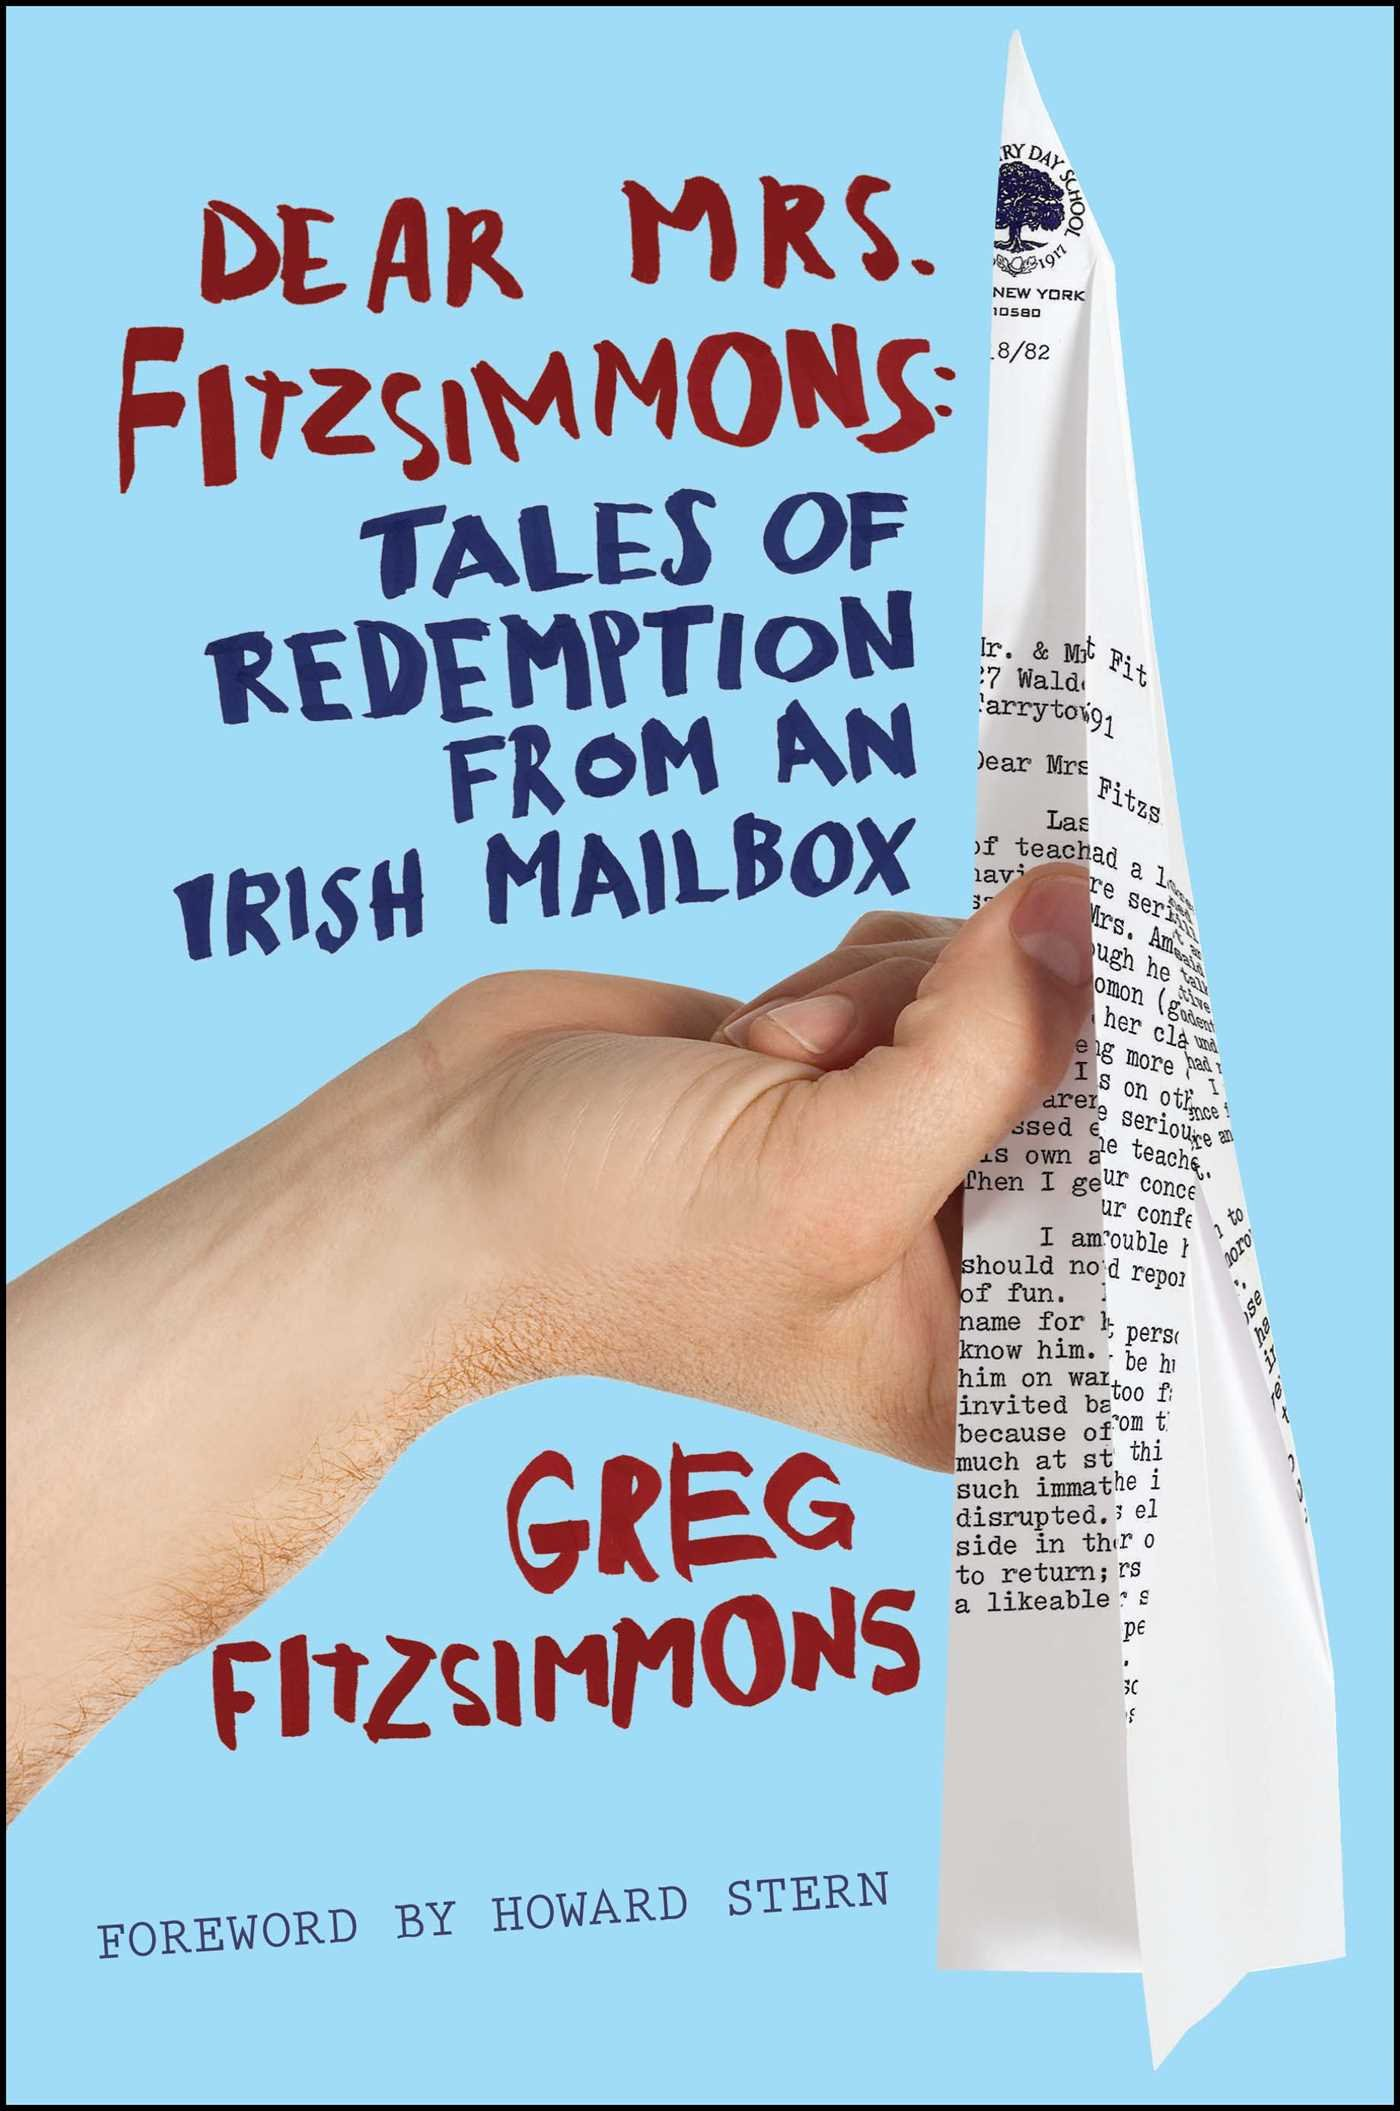 The coloring book colin quinn ebook - Dear Mrs Fitzsimmons Tales Of Redemption From An Irish Mailbox Greg Fitzsimmons 9781439182703 Amazon Com Books